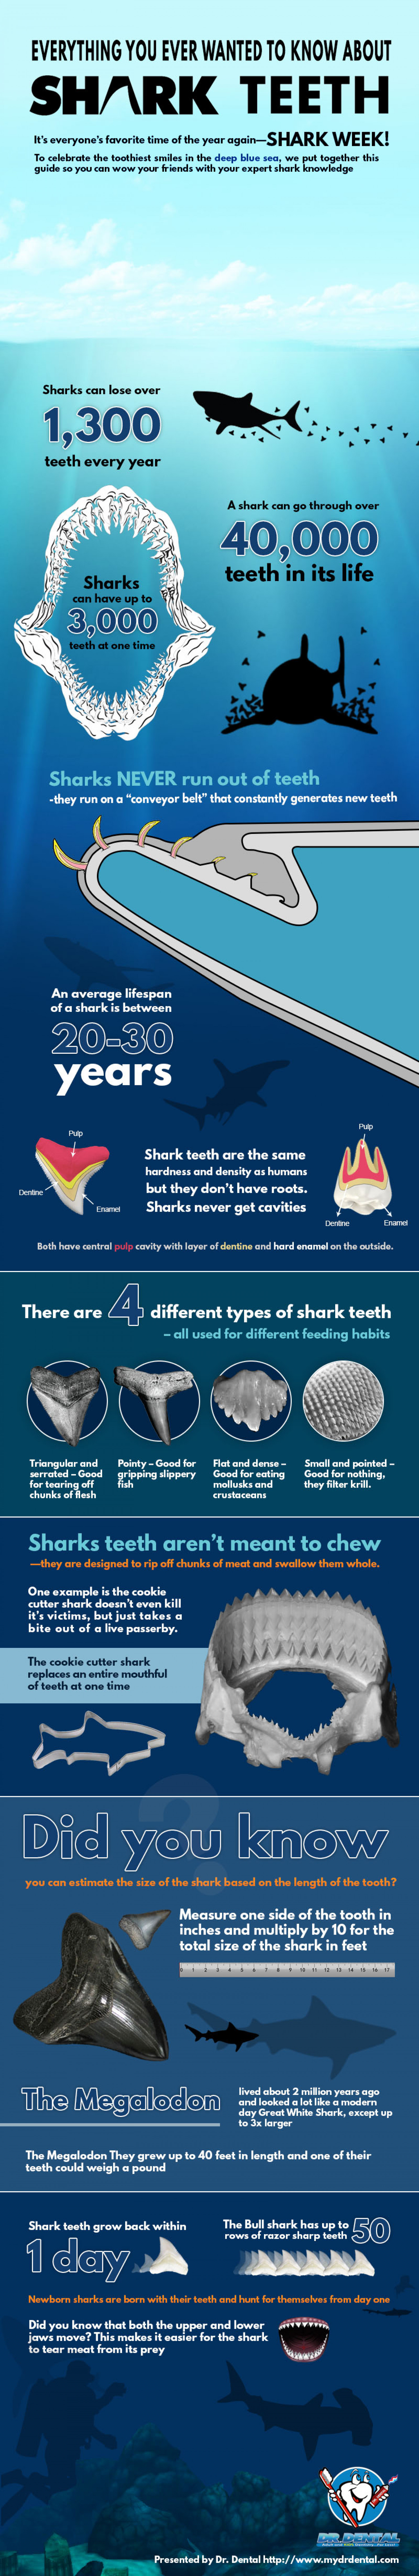 Everything You Wanted to Know About Shark Teeth Infographic